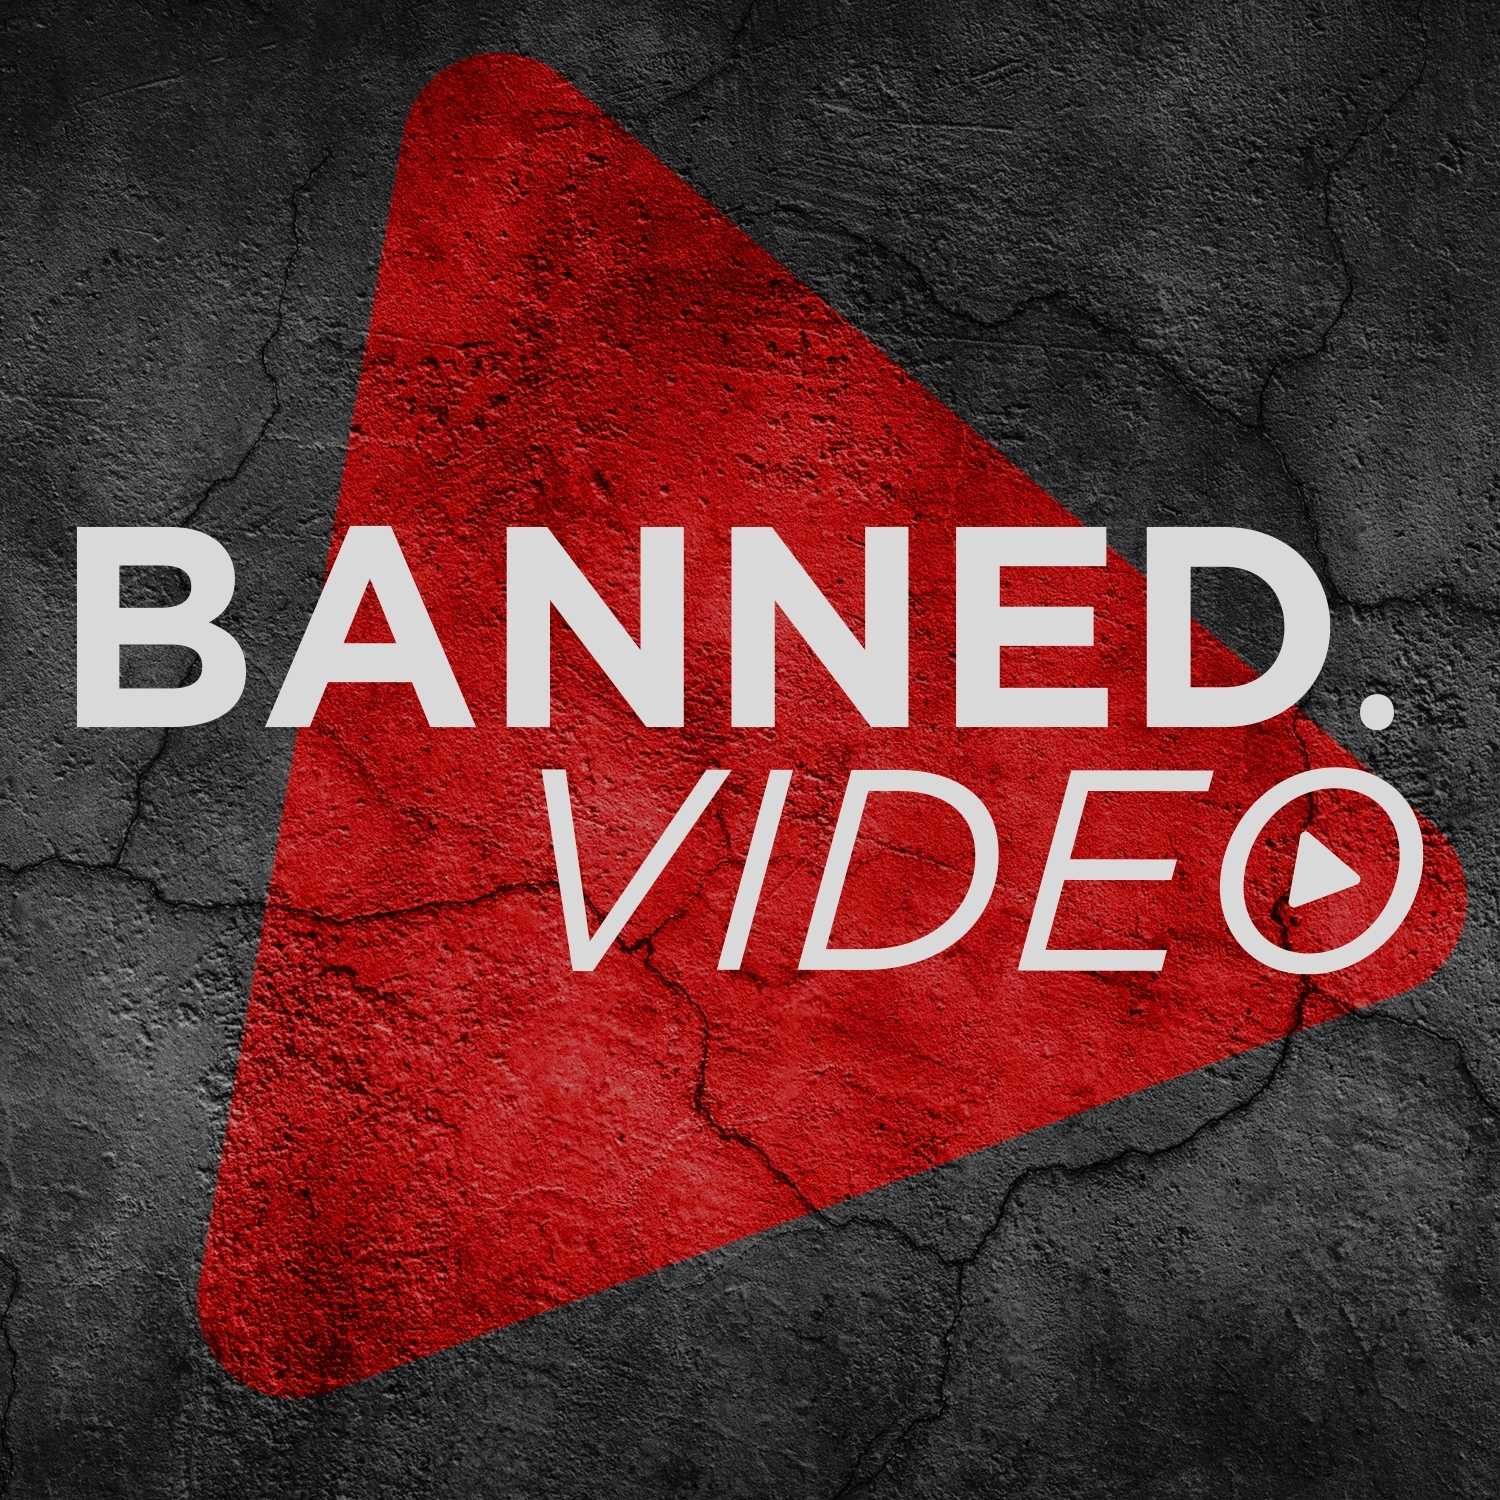 BANNED.video